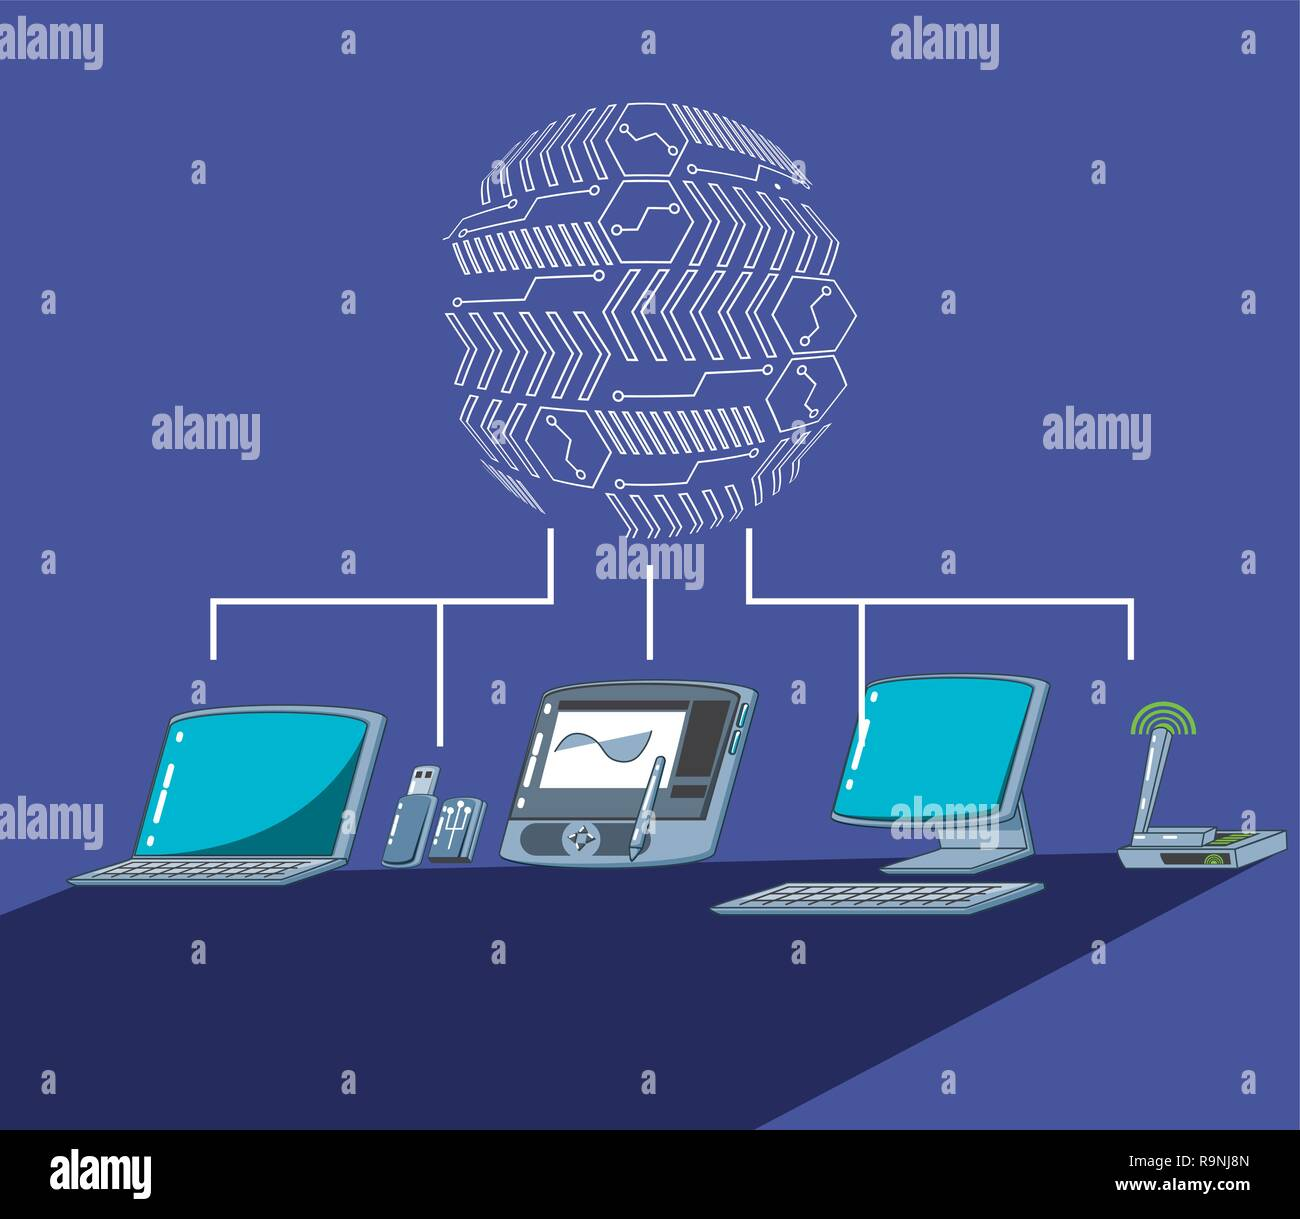 graphic tablet with computers vector illustration design - Stock Image